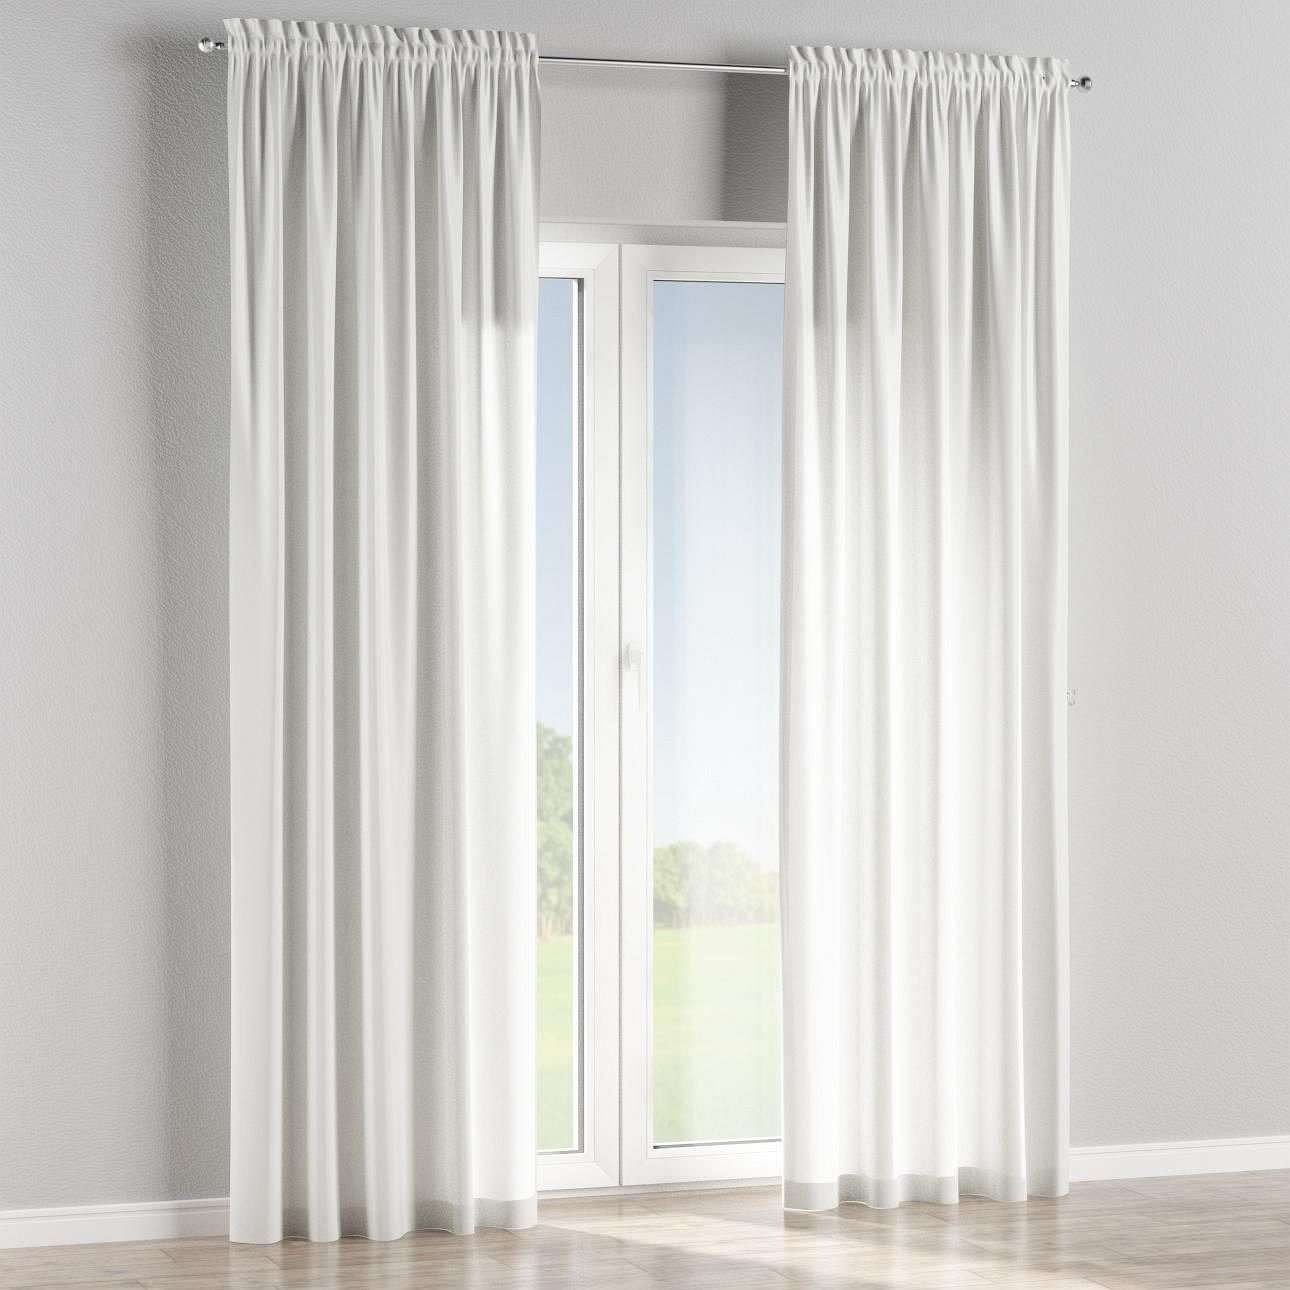 Slot and frill lined curtains in collection Marina, fabric: 140-60